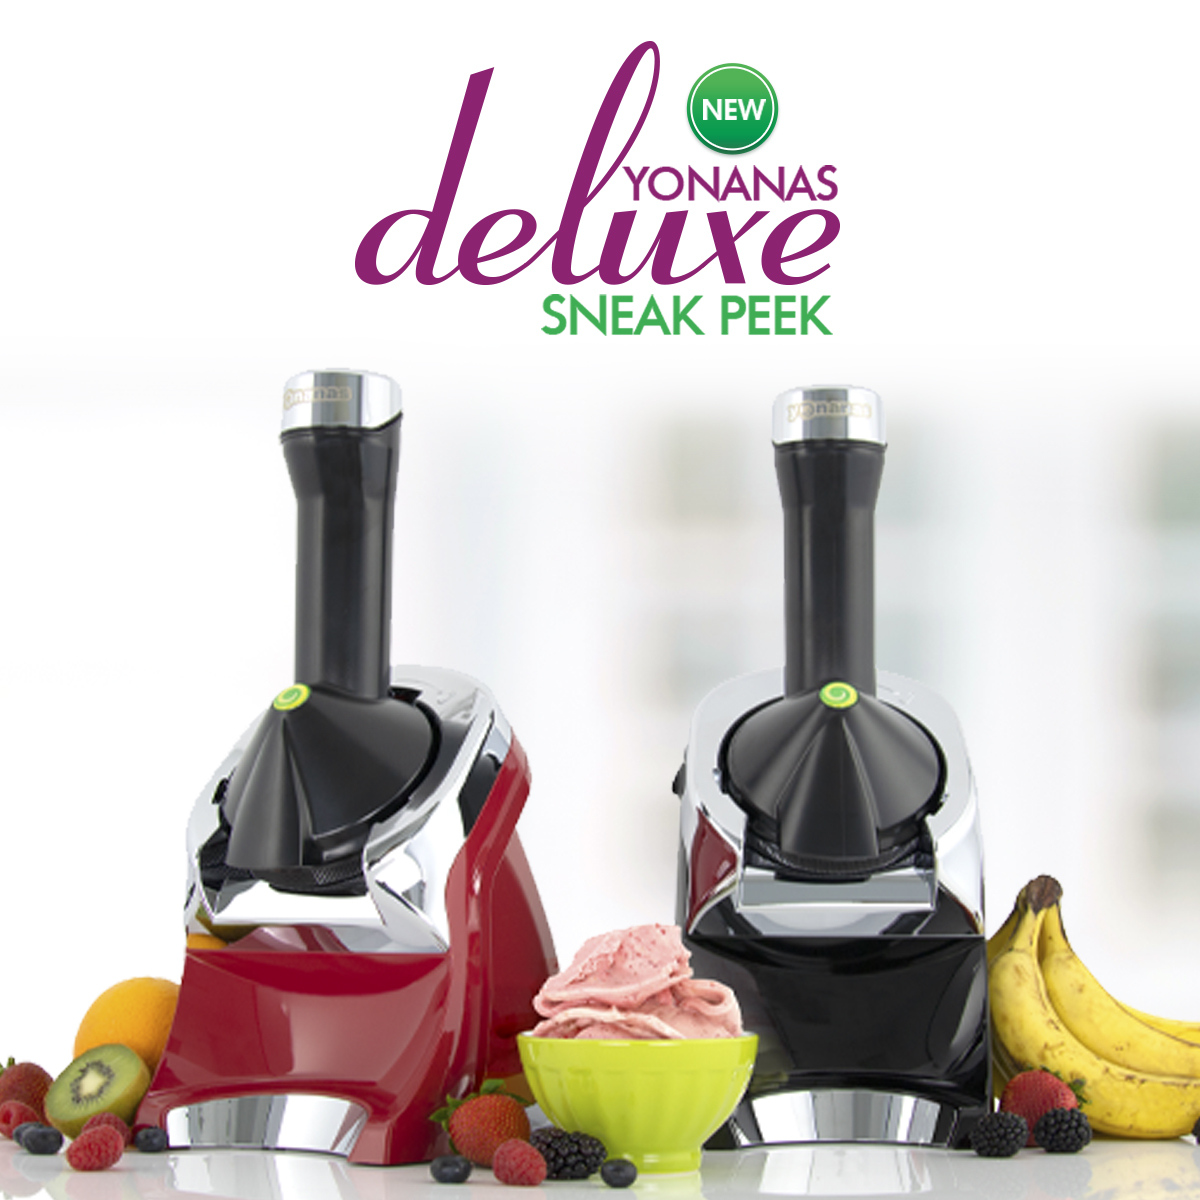 SNEAK PEEK: Meet the NEW Yonanas Deluxe!  There is now more YO to love with a premium chrome look and enhanced 75+ Recipe Book. Available for pre-order now: https://t.co/cEtX6FUJ8O https://t.co/E1OvvIf7vK